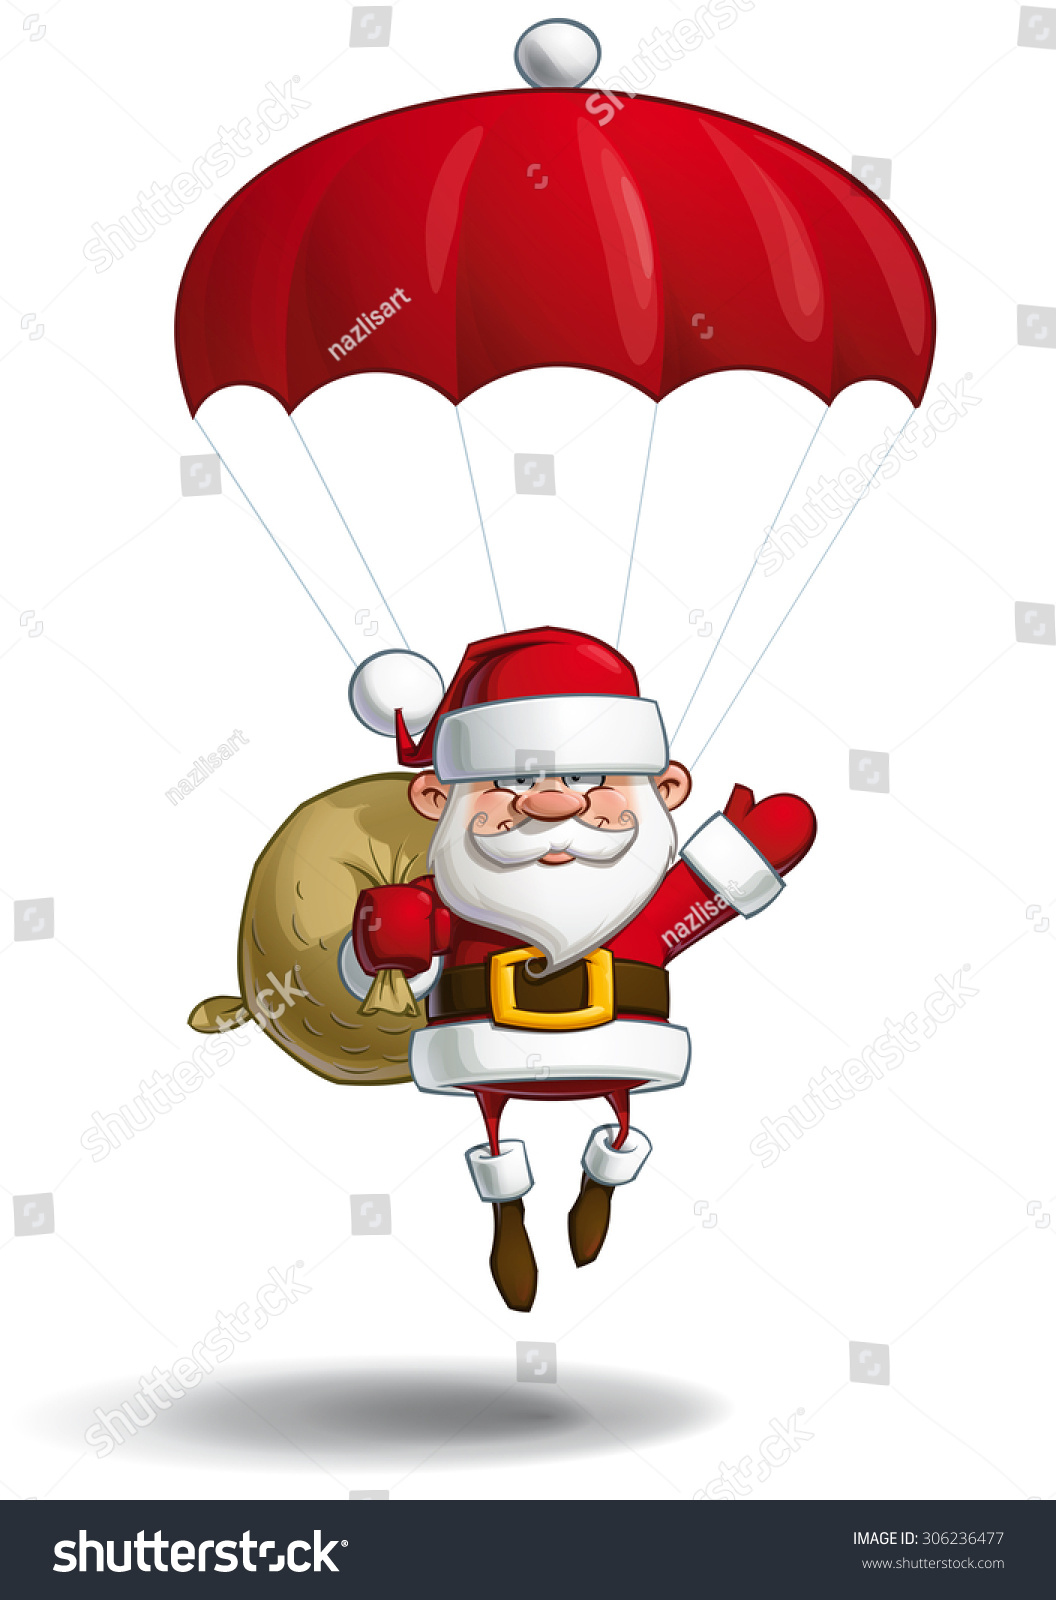 https://image.shutterstock.com/z/stock-vector-cartoon-vector-illustration-of-a-happy-santa-claus-falling-with-a-parachute-holding-a-gift-sack-306236477.jpg